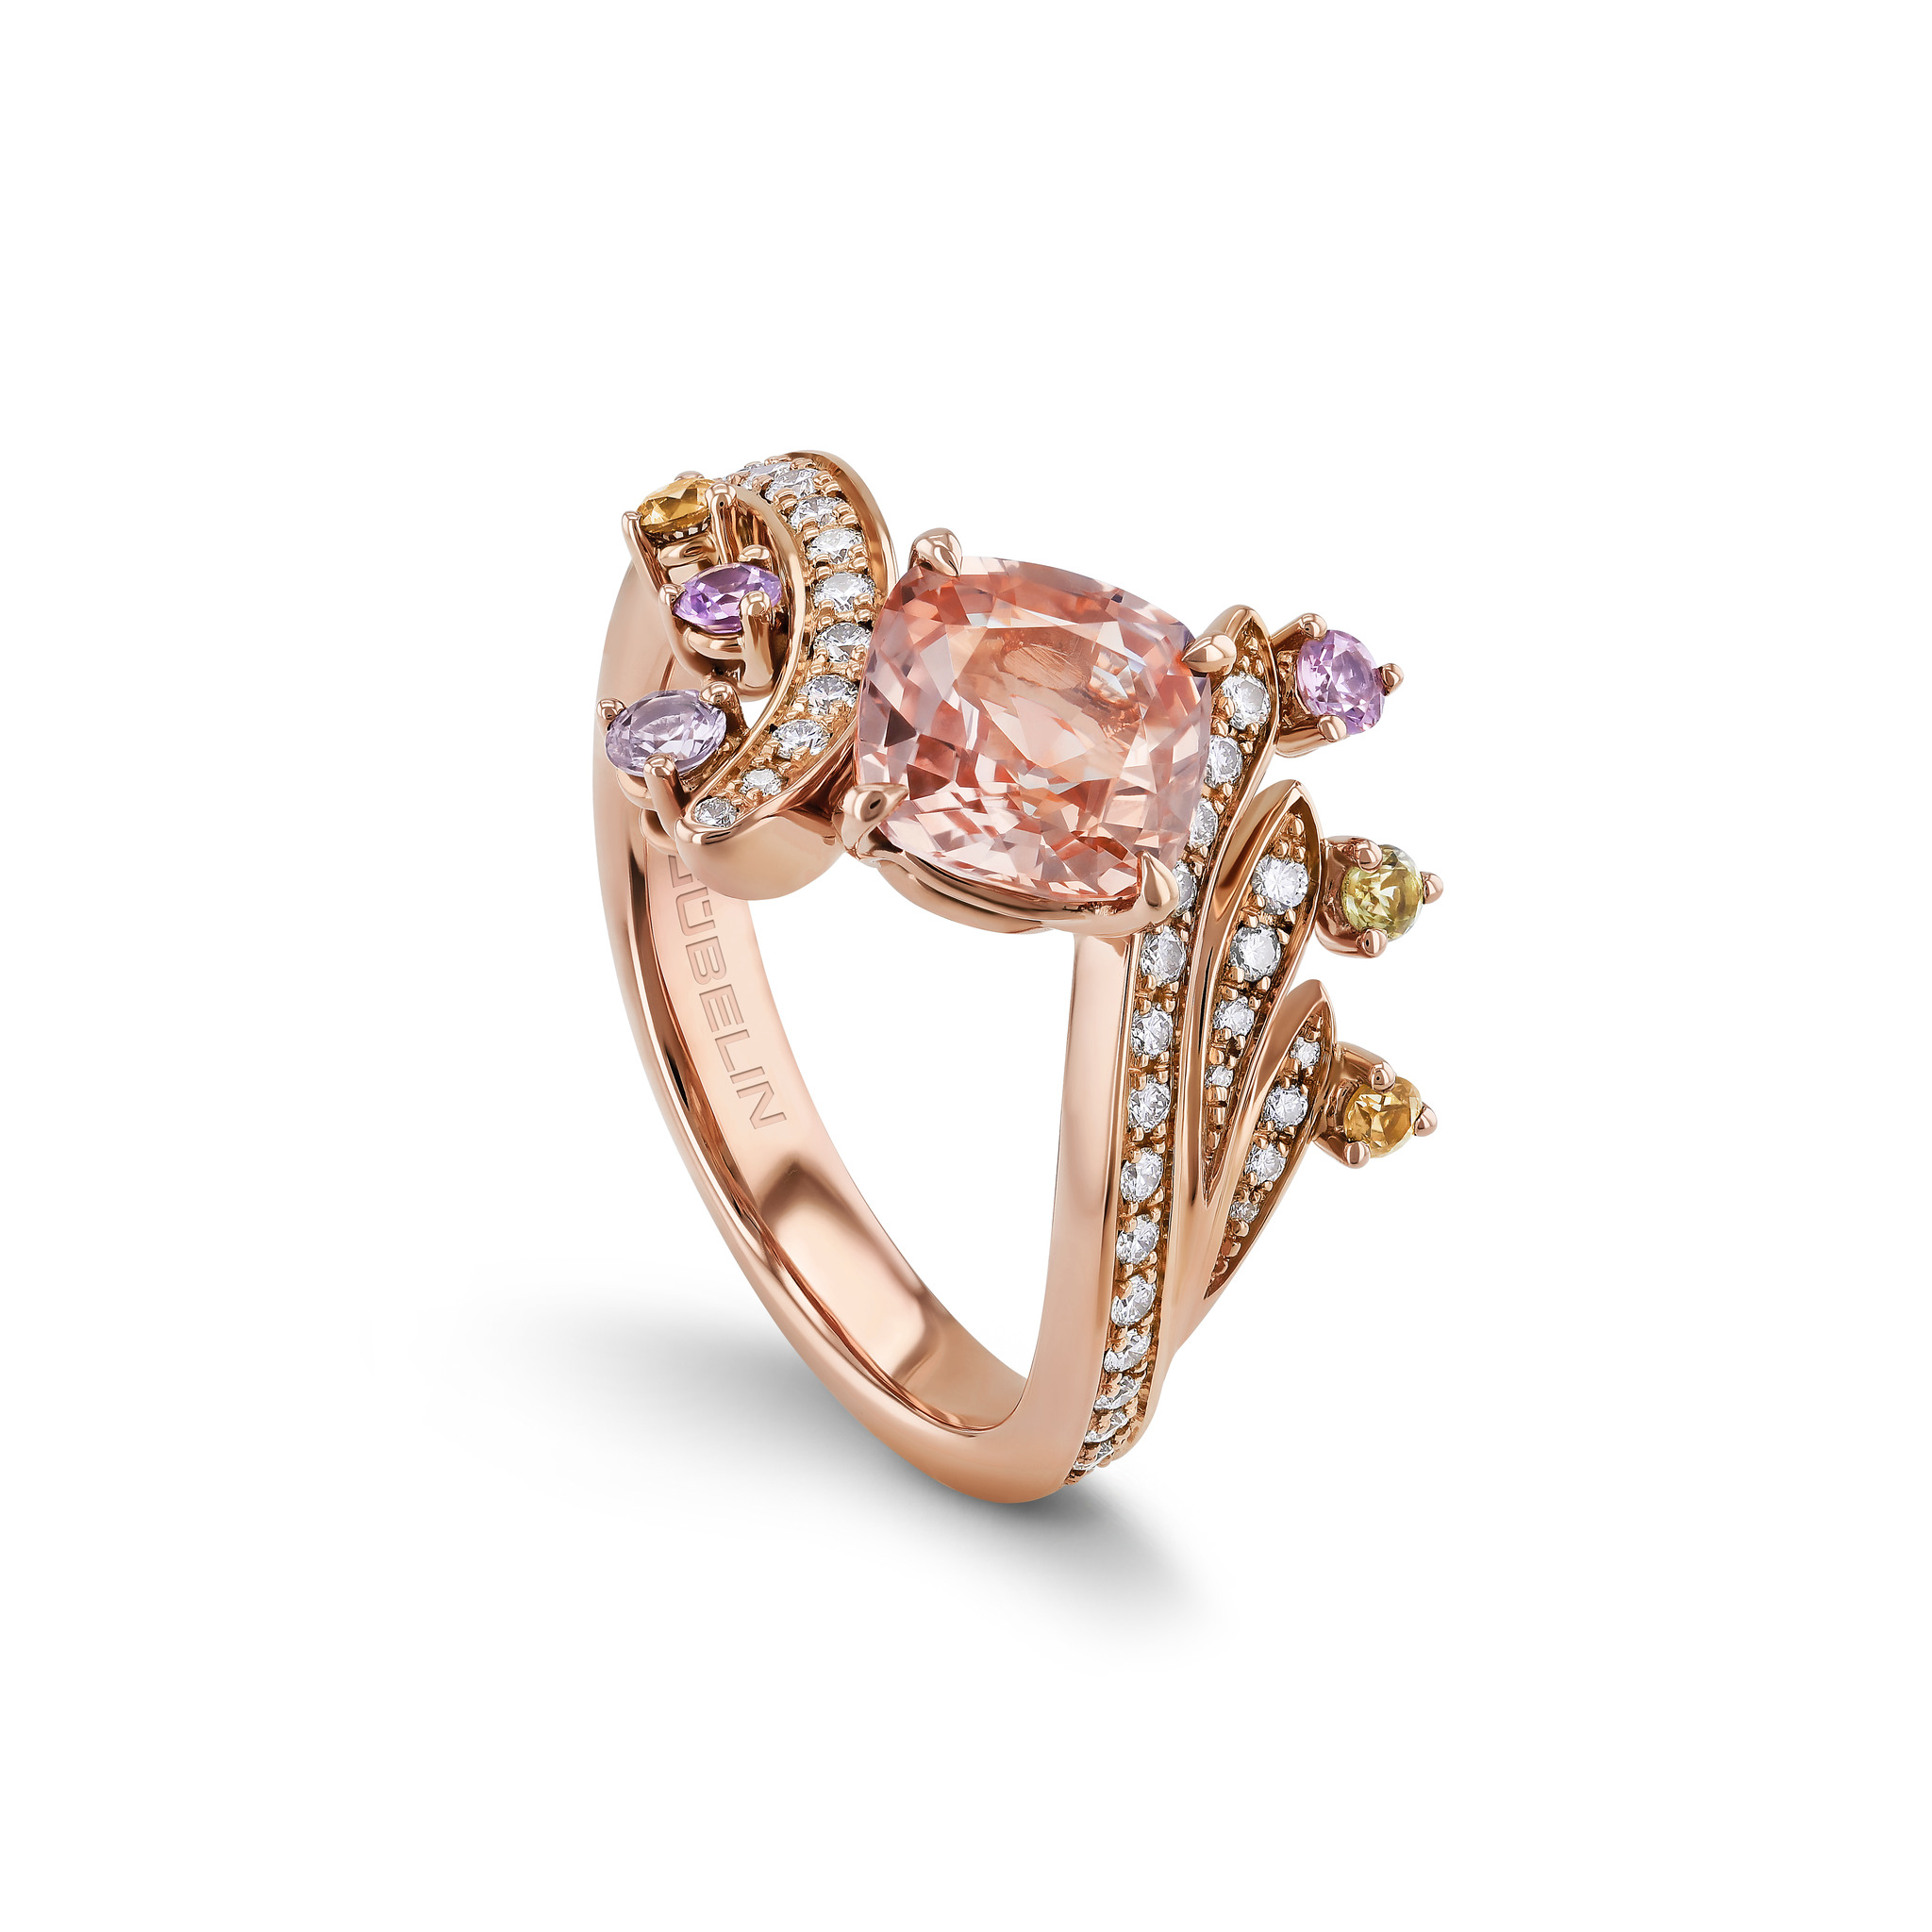 Ring with padparadscha sapphire